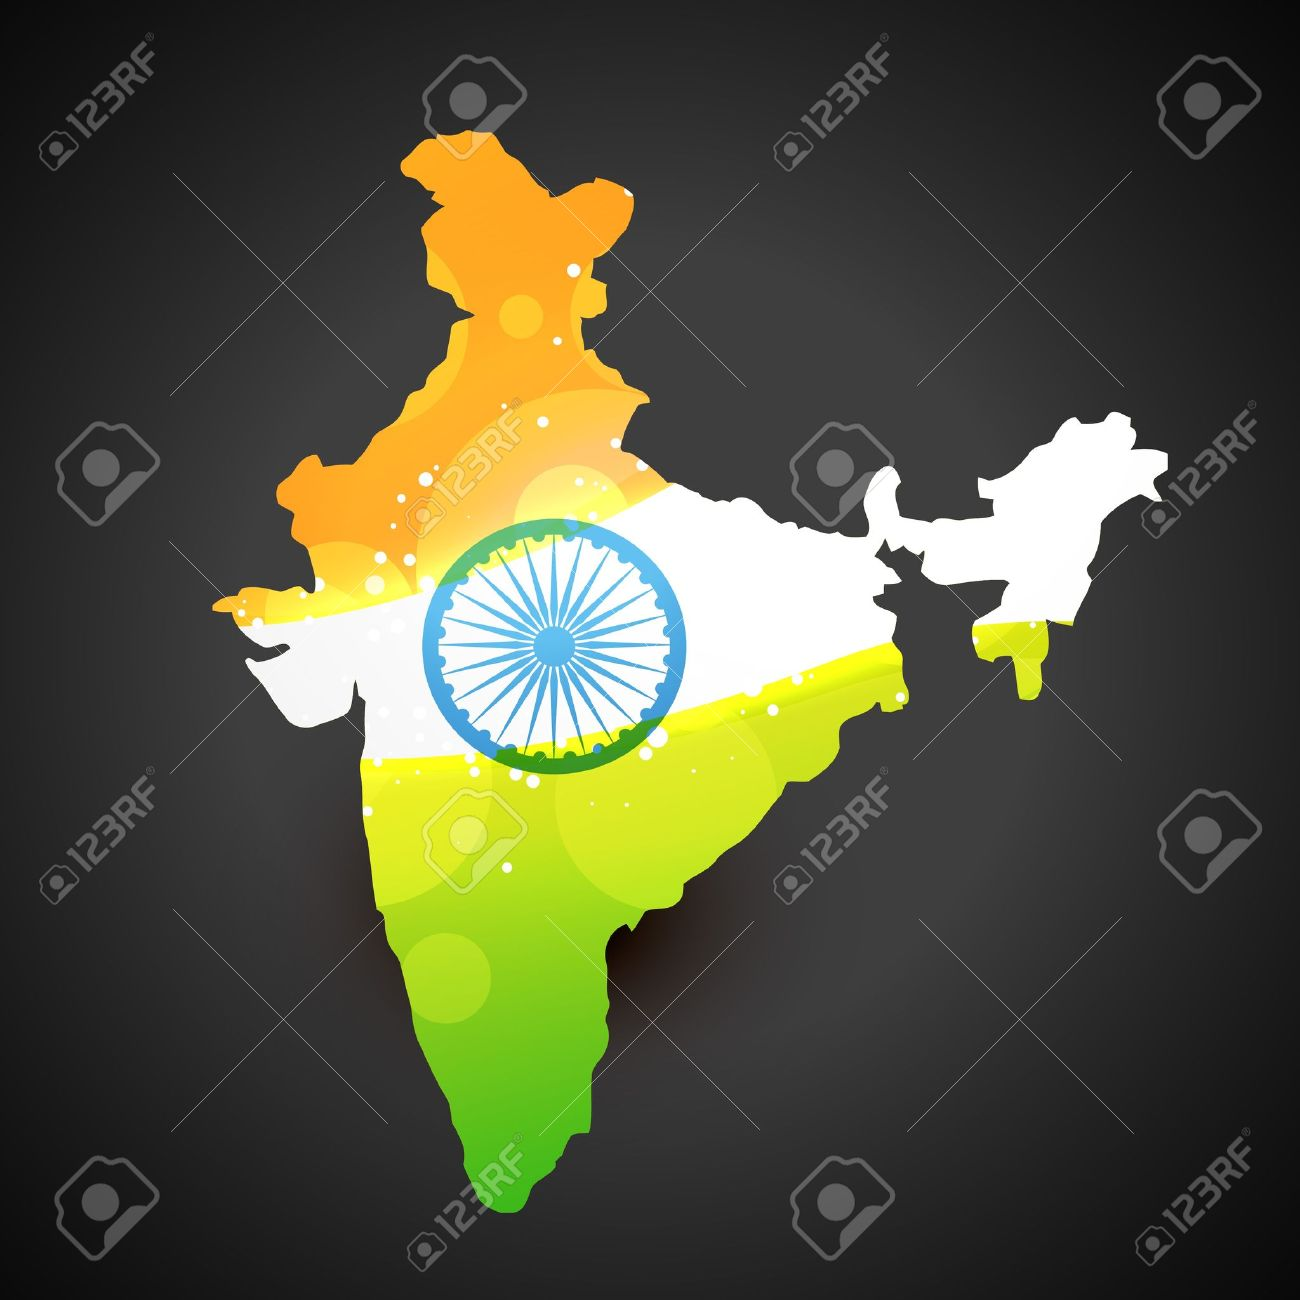 vector india map with flag design art Stock Vector - 14693170